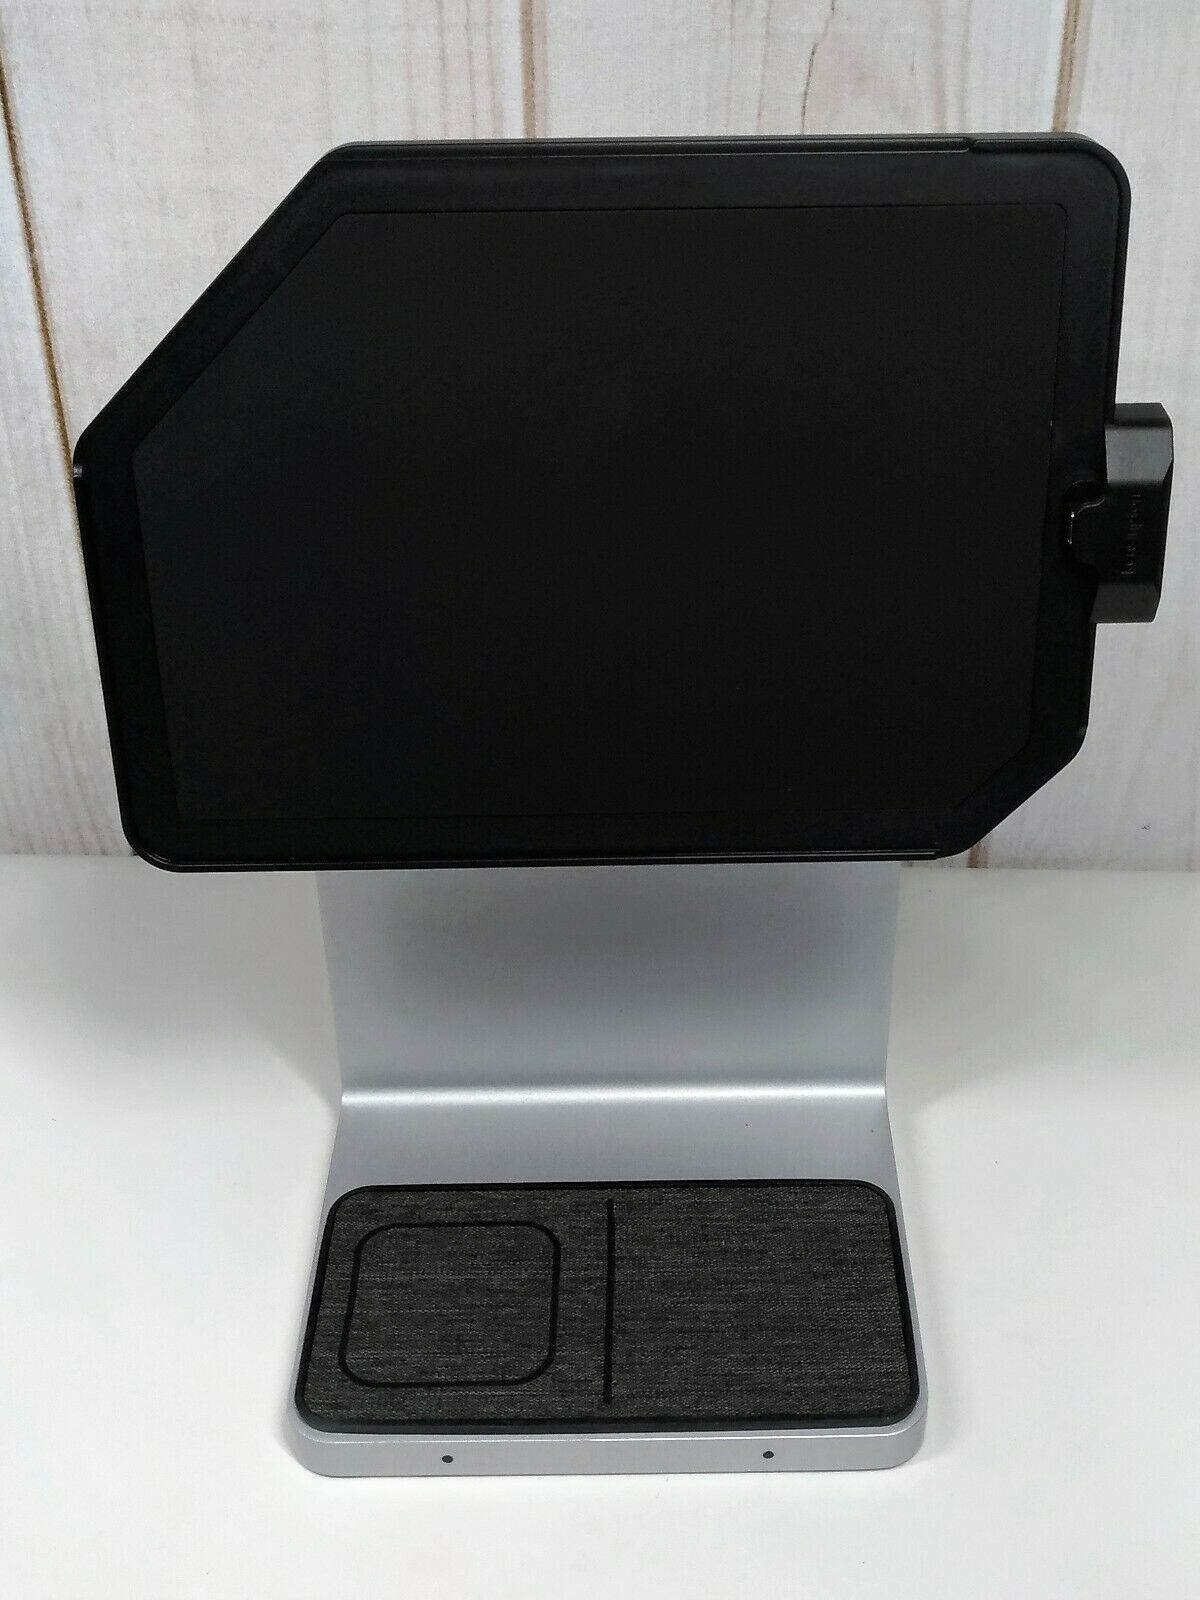 Kensington IPad Docking Station For 11 IPad Pro And IPad Air K34031WW  - $400.00